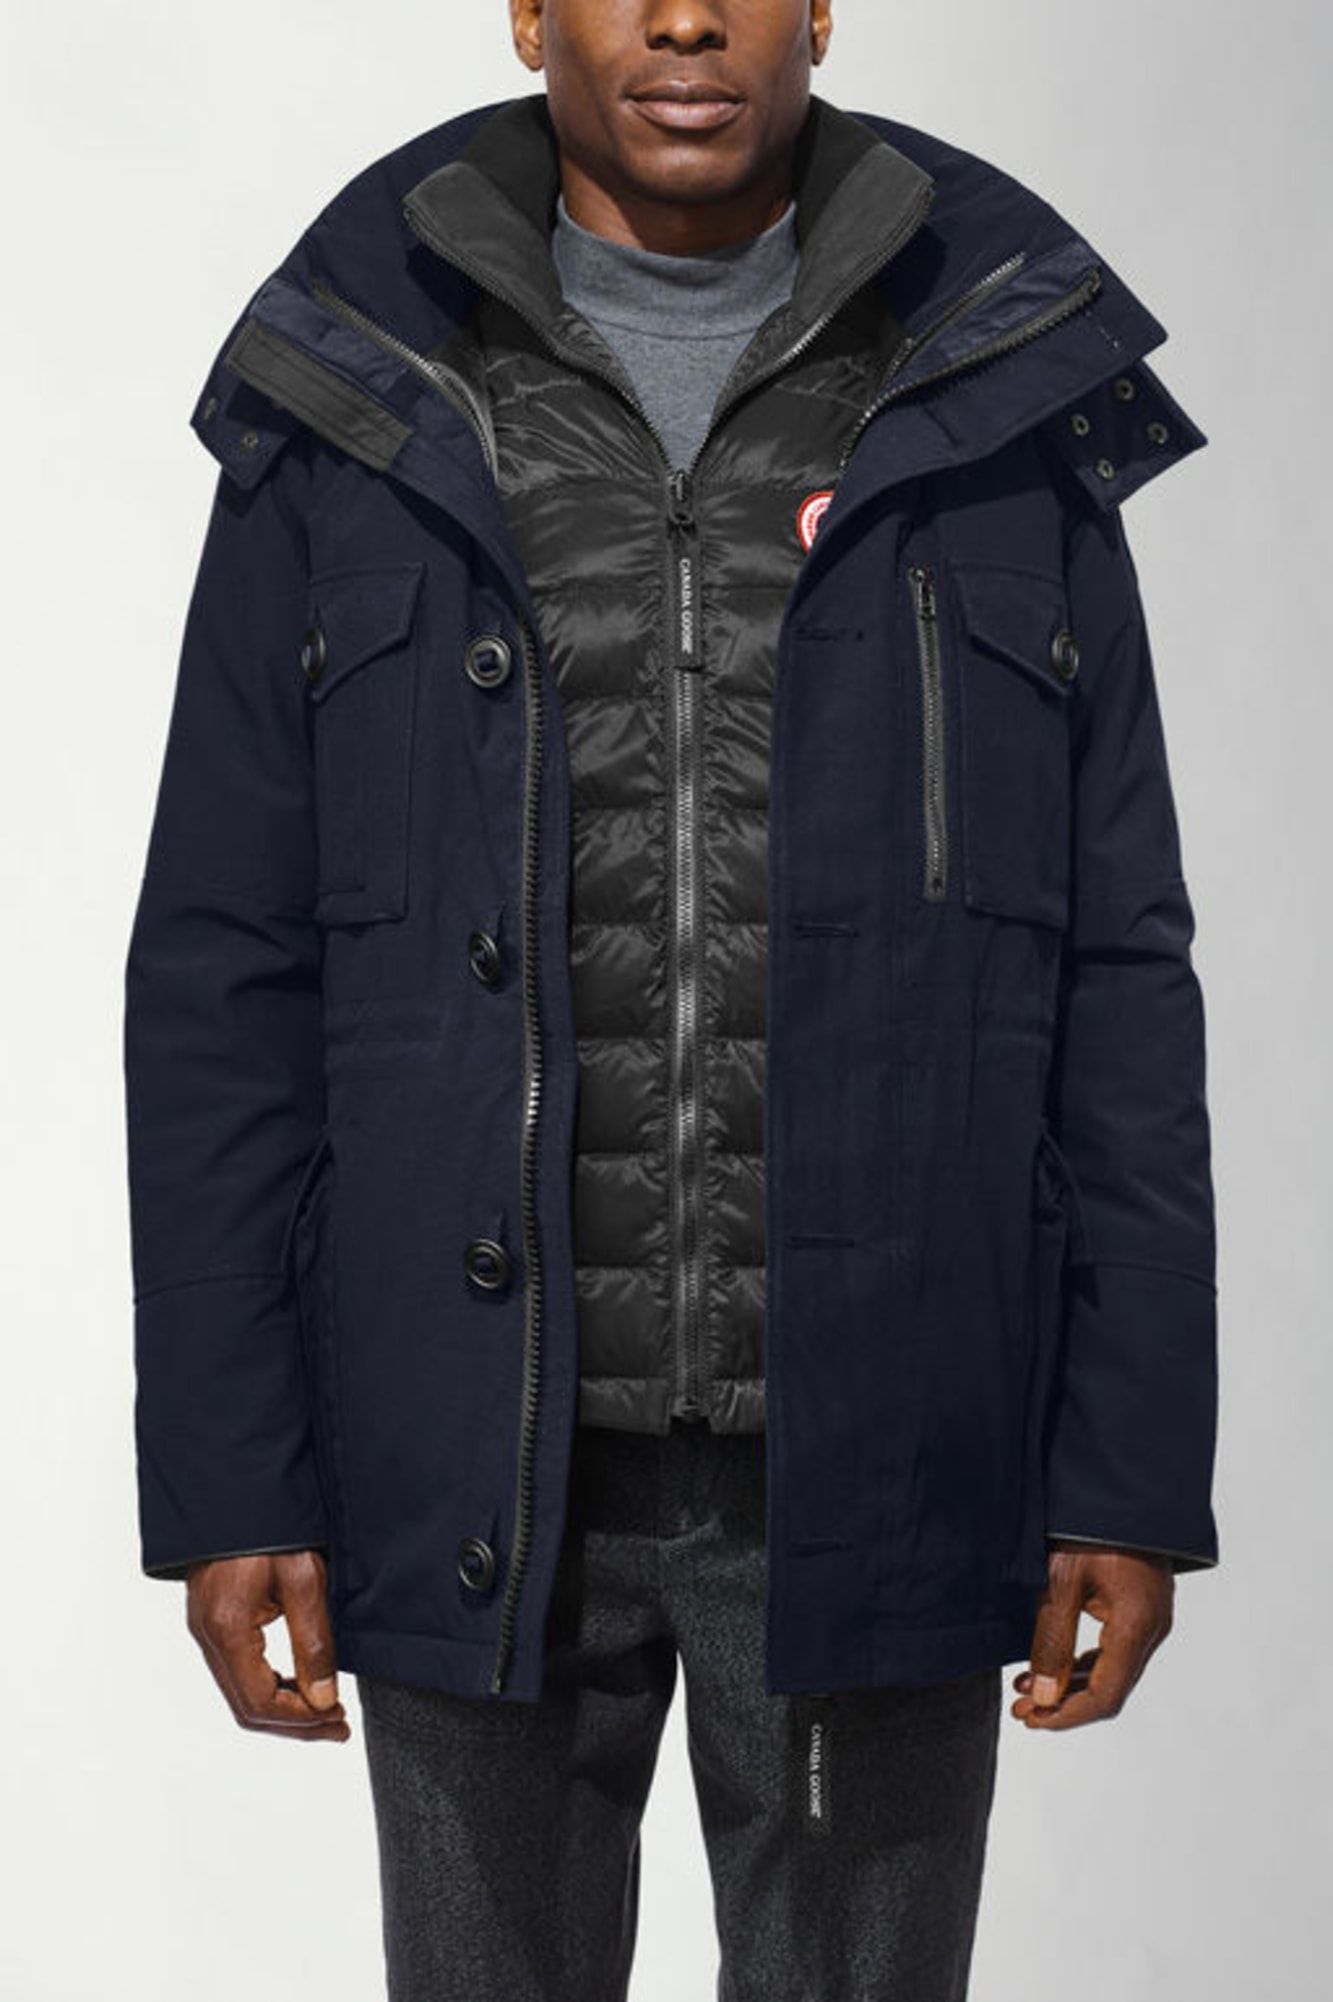 Canada Goose Men's Squall Jacket 3 in 1 Waterproof Navy